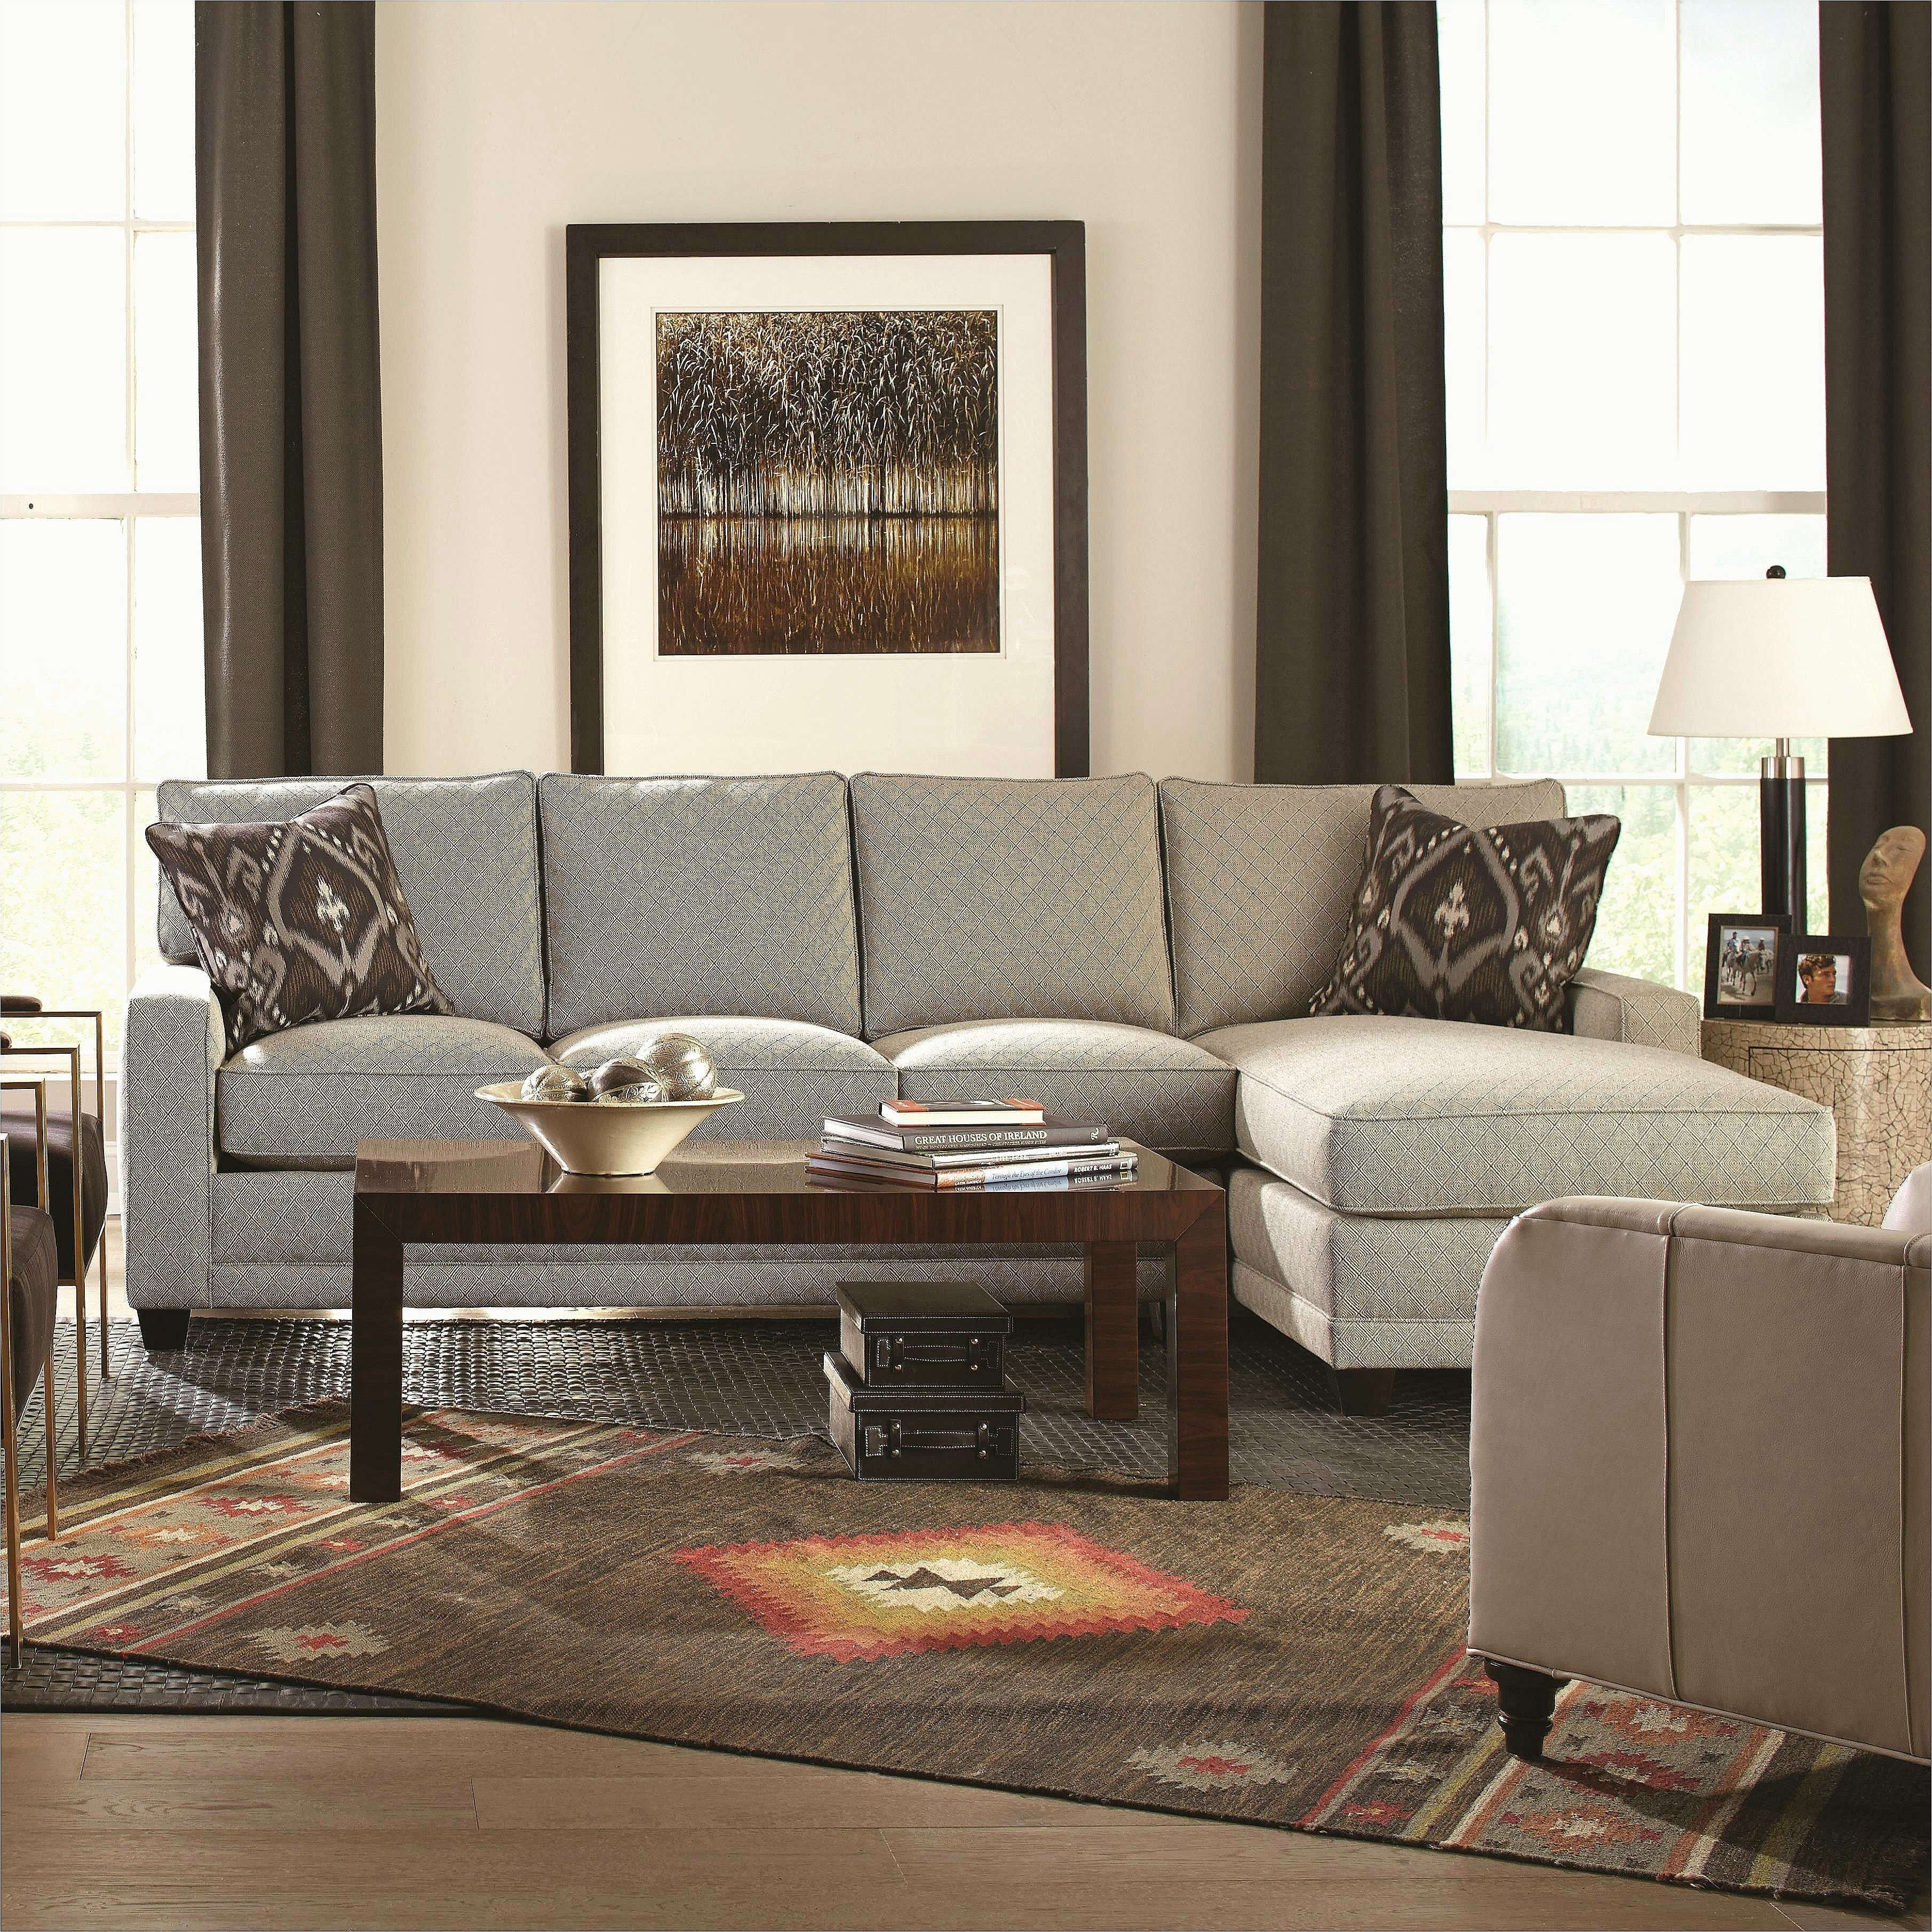 15 Some Of The Coolest Ideas How To Make Cheap Modern Living Room Sets Beige Living Rooms Living Room Modern Living Room Sets